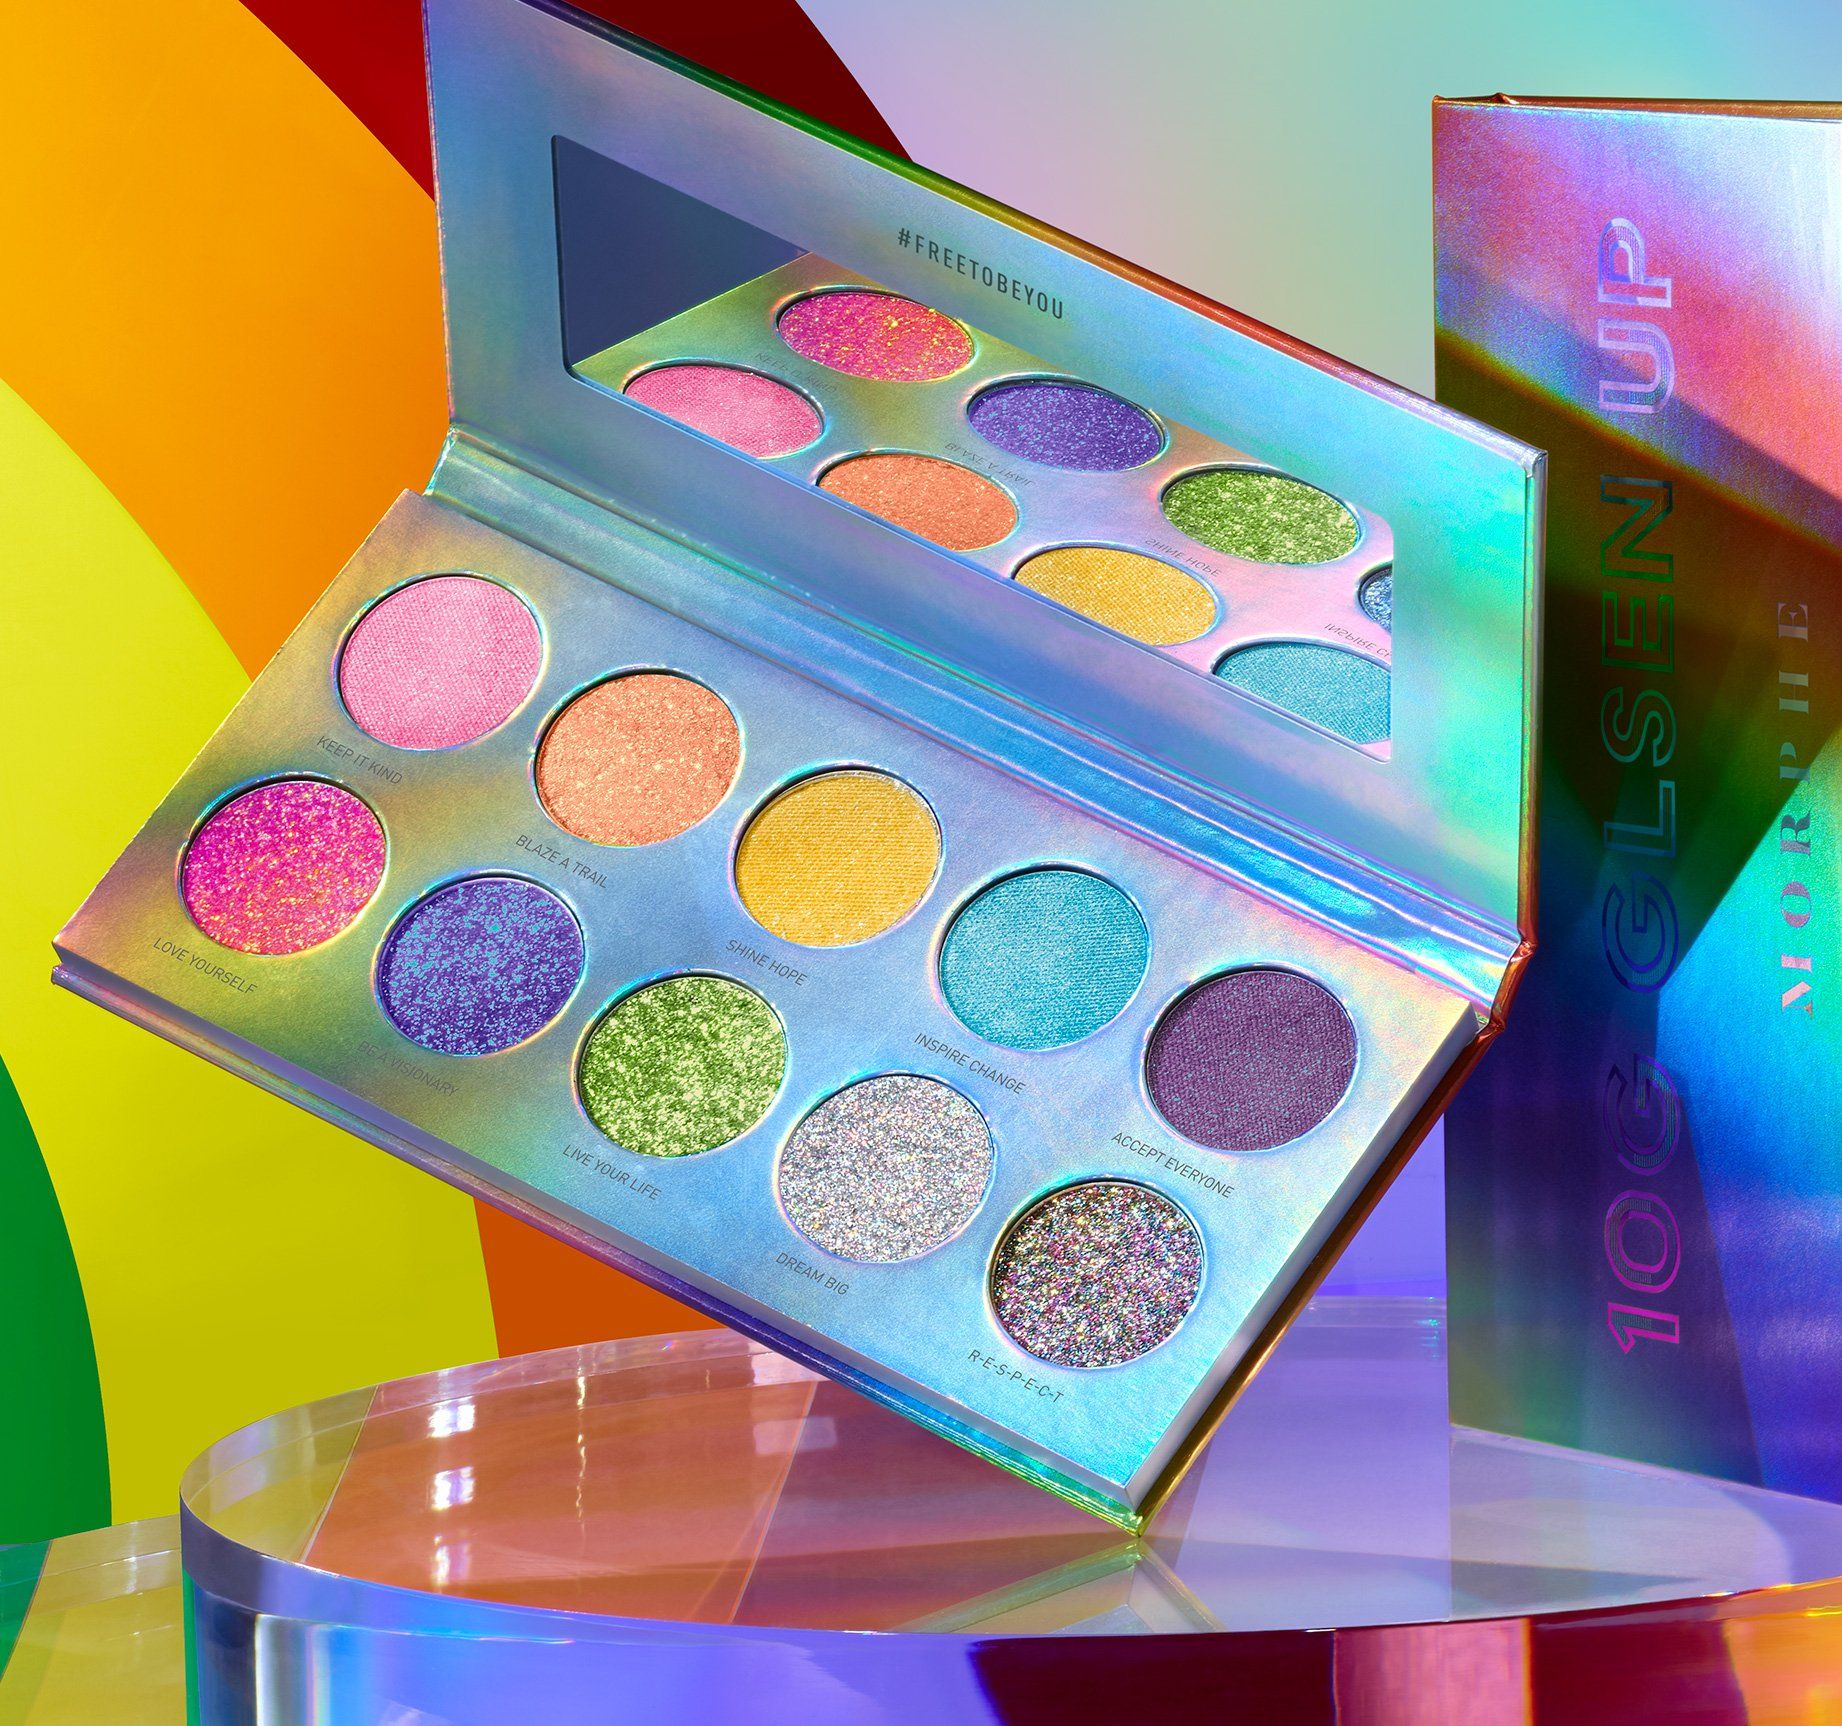 FREE TO BE YOU: GLSEN UP ARTISTRY PALETTE